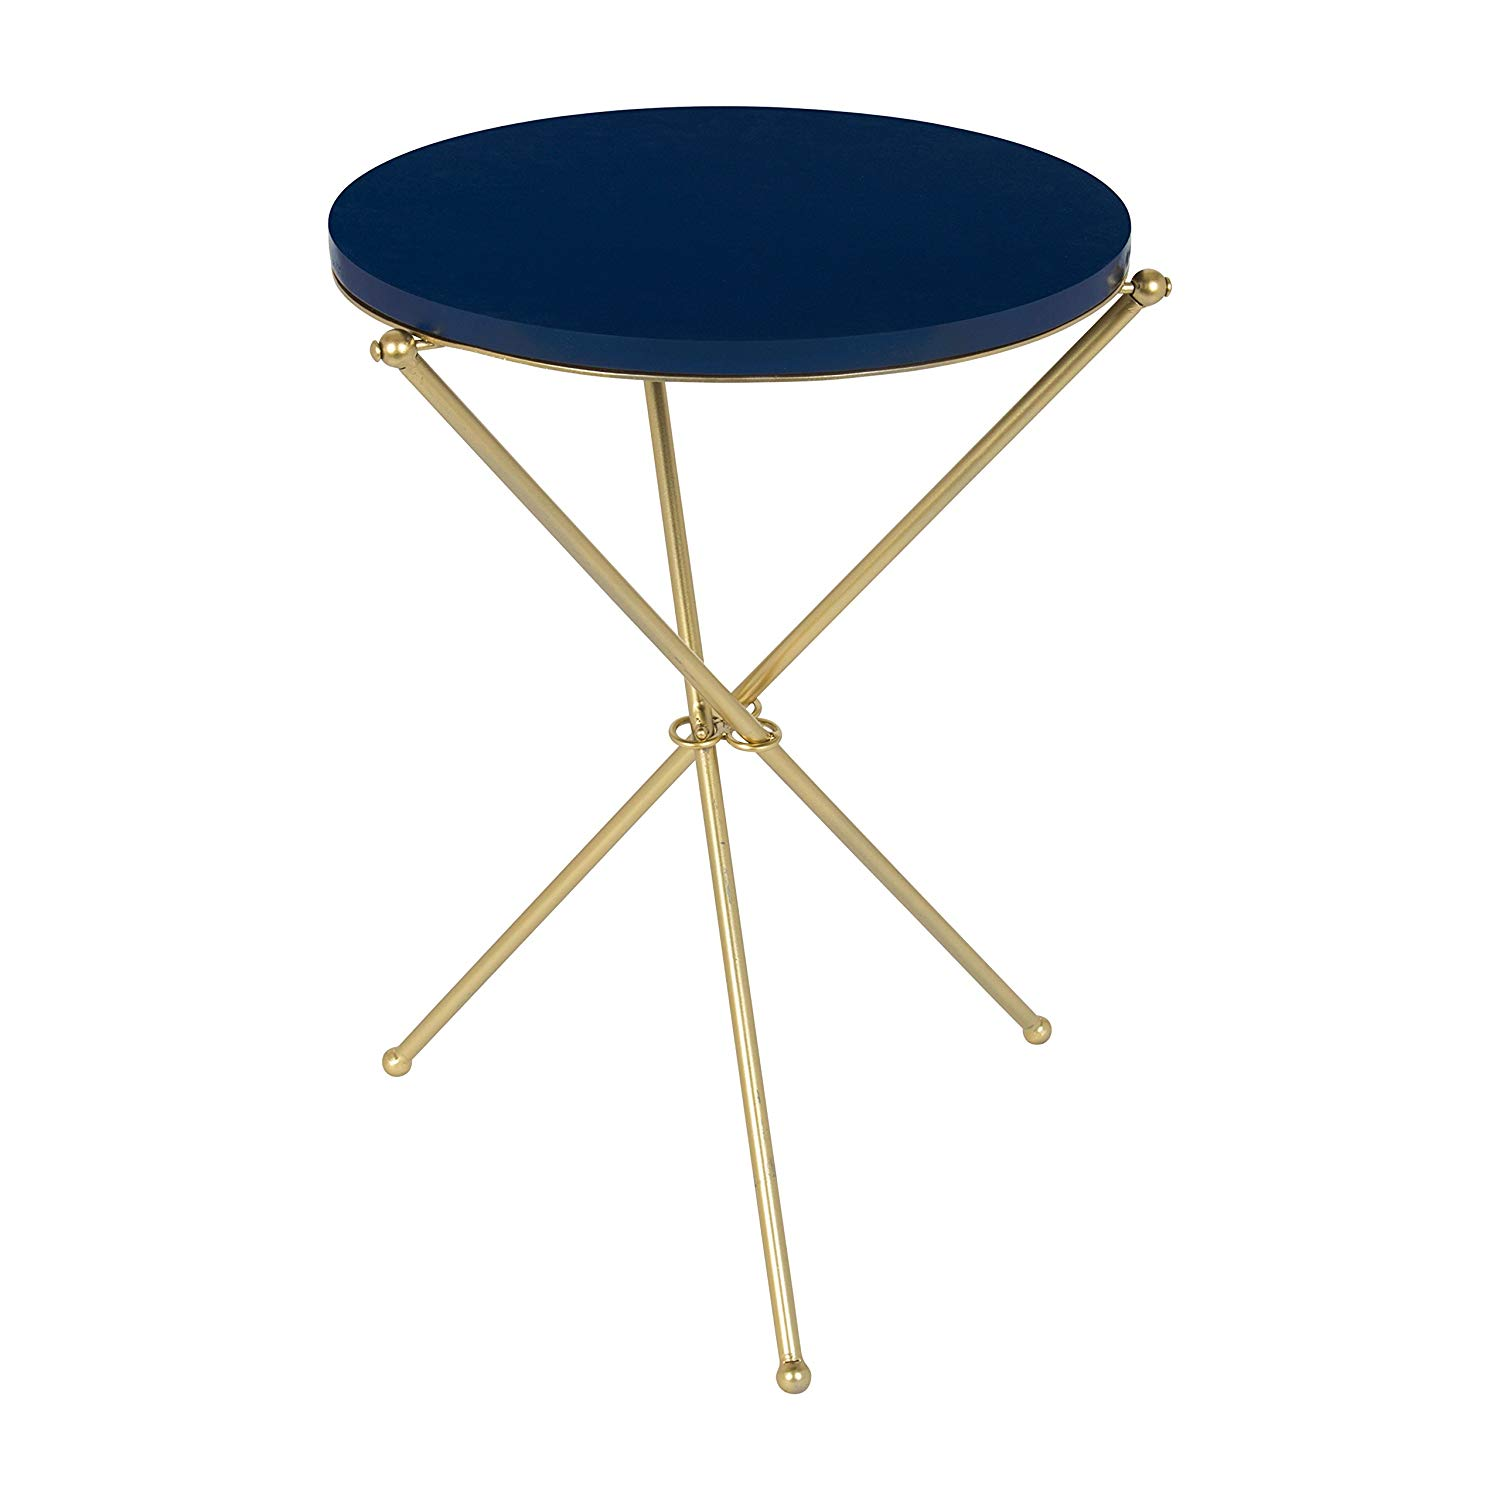 kate and laurel emellyn modern luxe folding side accent metal top table with round painted wooden tripod legs navy blue gold inch diameter pineapple umbrella small patio furniture